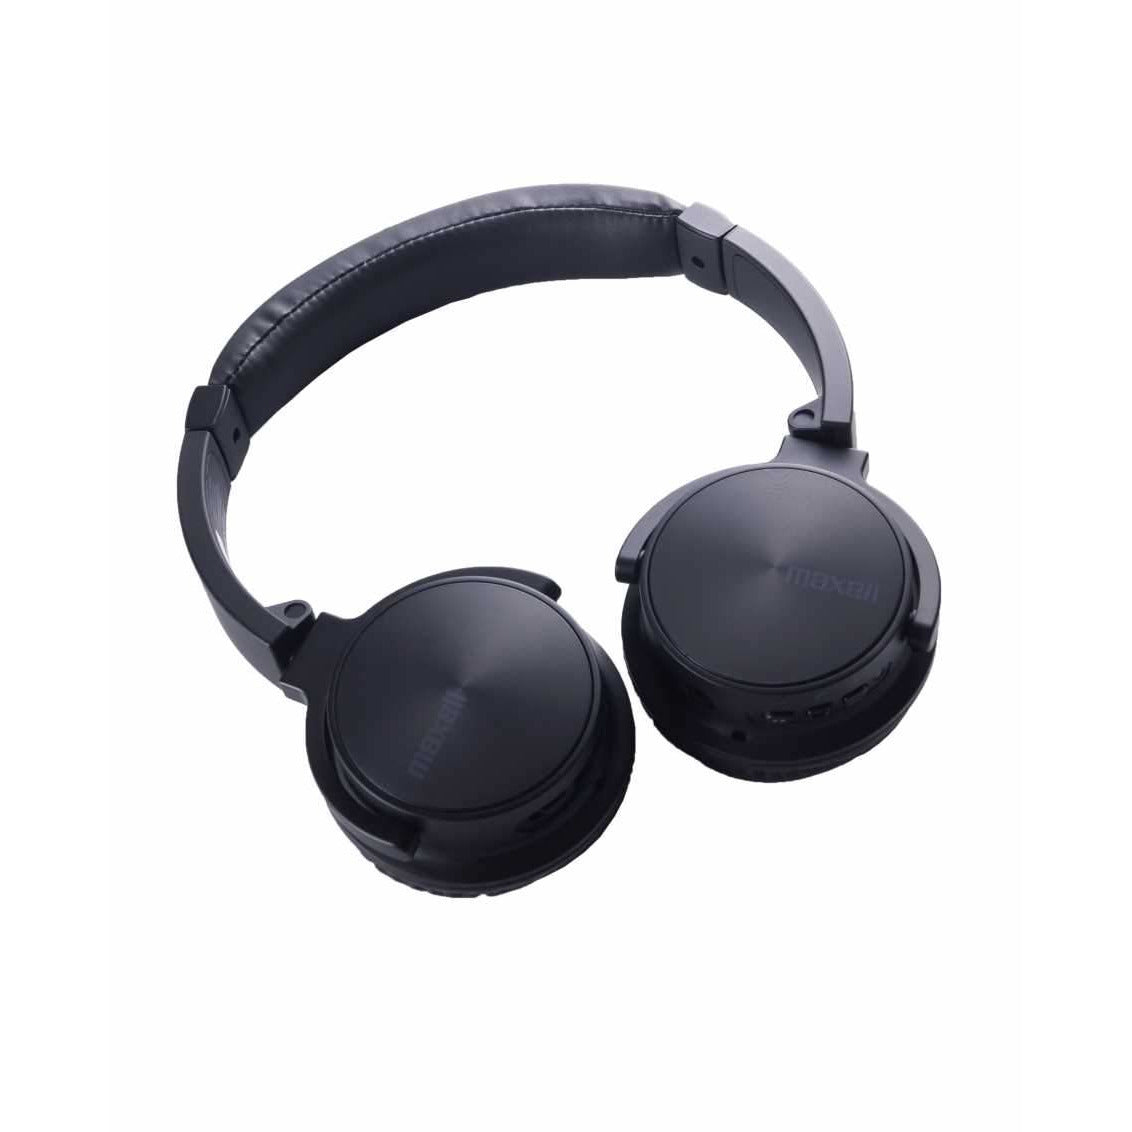 Maxell BT Travel Headphone Black [Accessories]